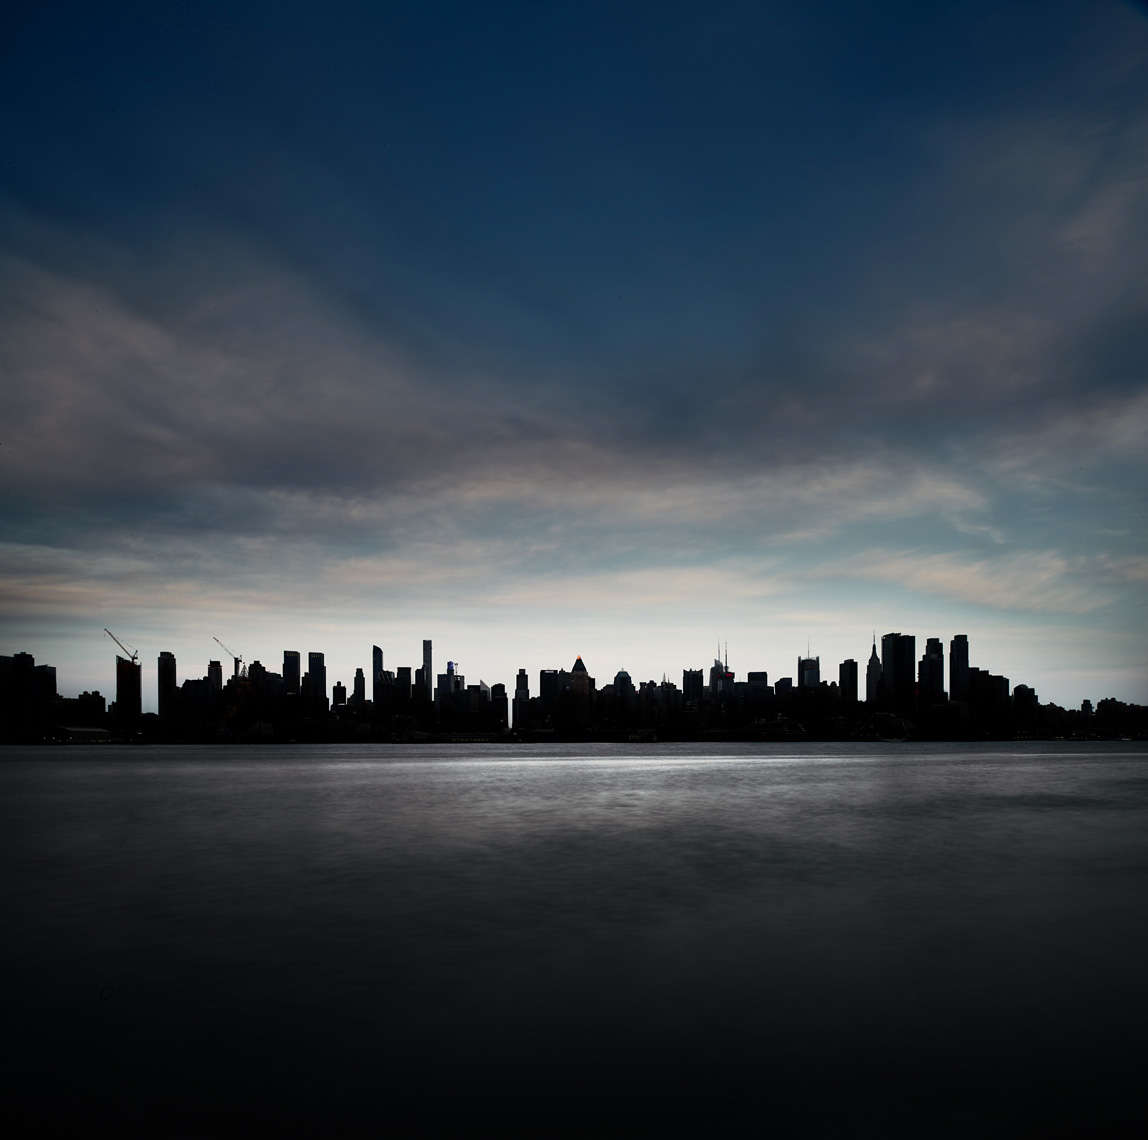 Manhattan skyline and water at dusk landscape